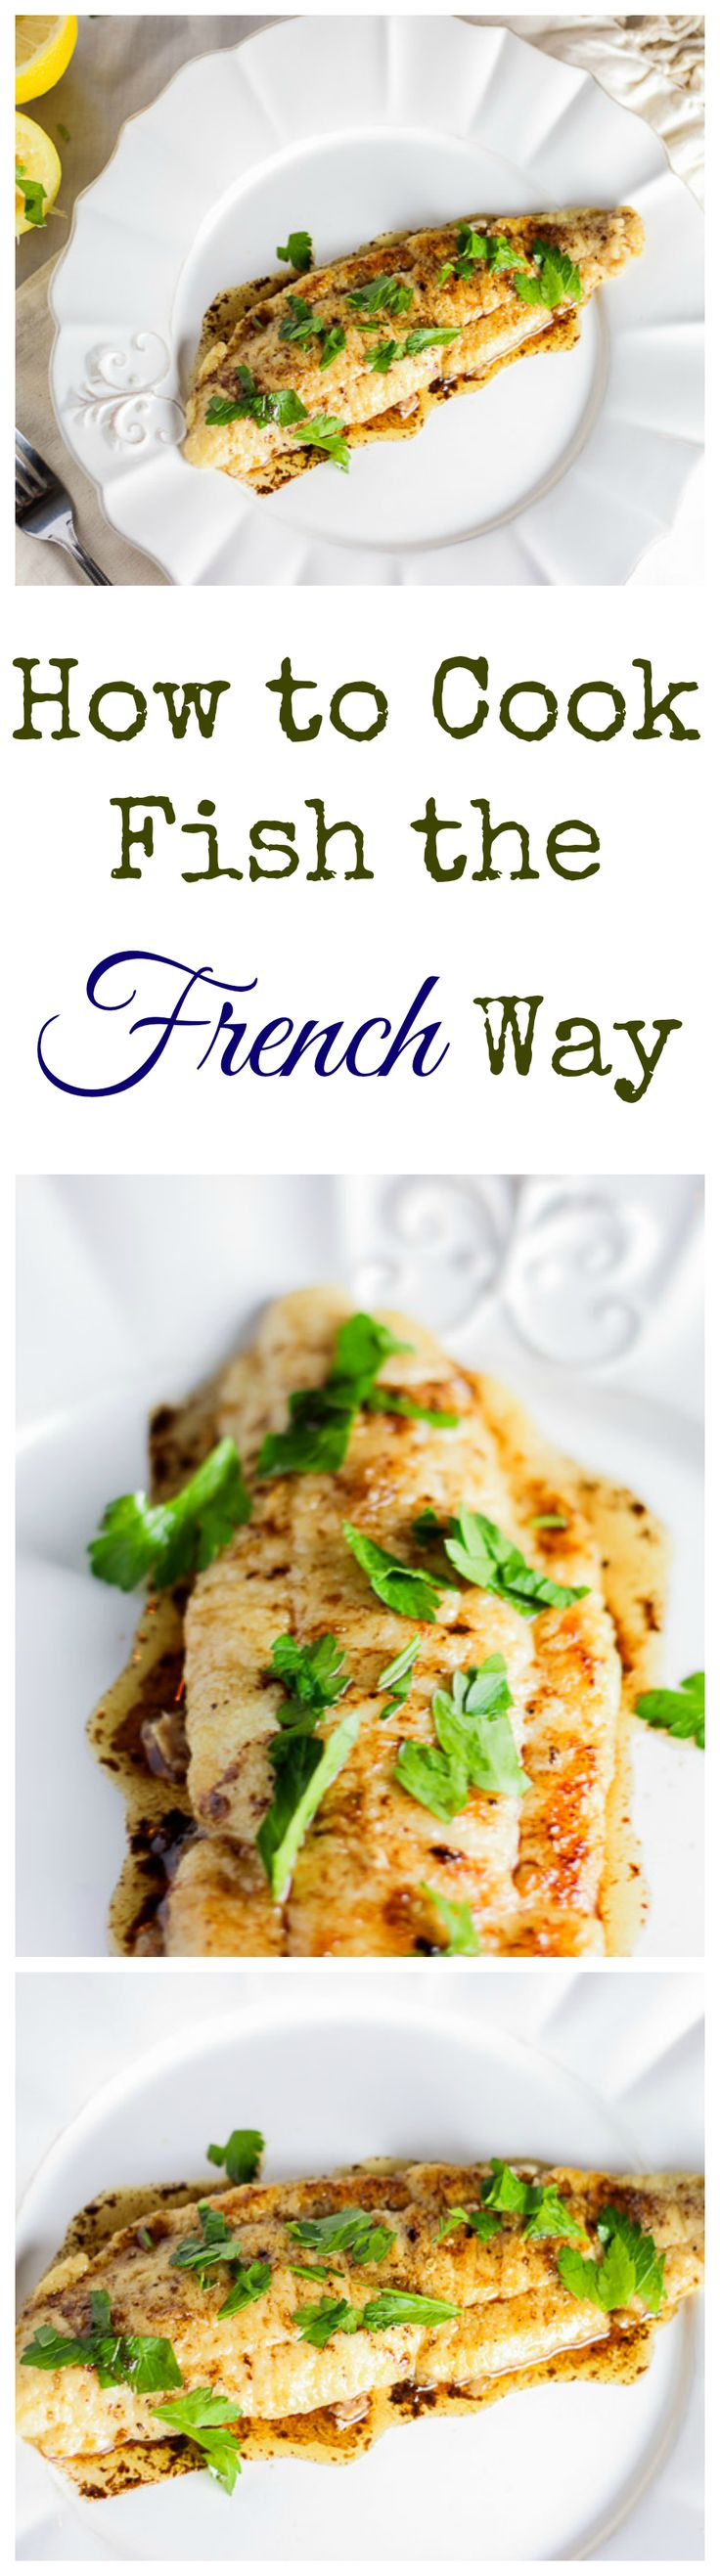 This fish is pan seared and served with a butter, lemon and parsley sauce. It's a very quick and tasty French classic.